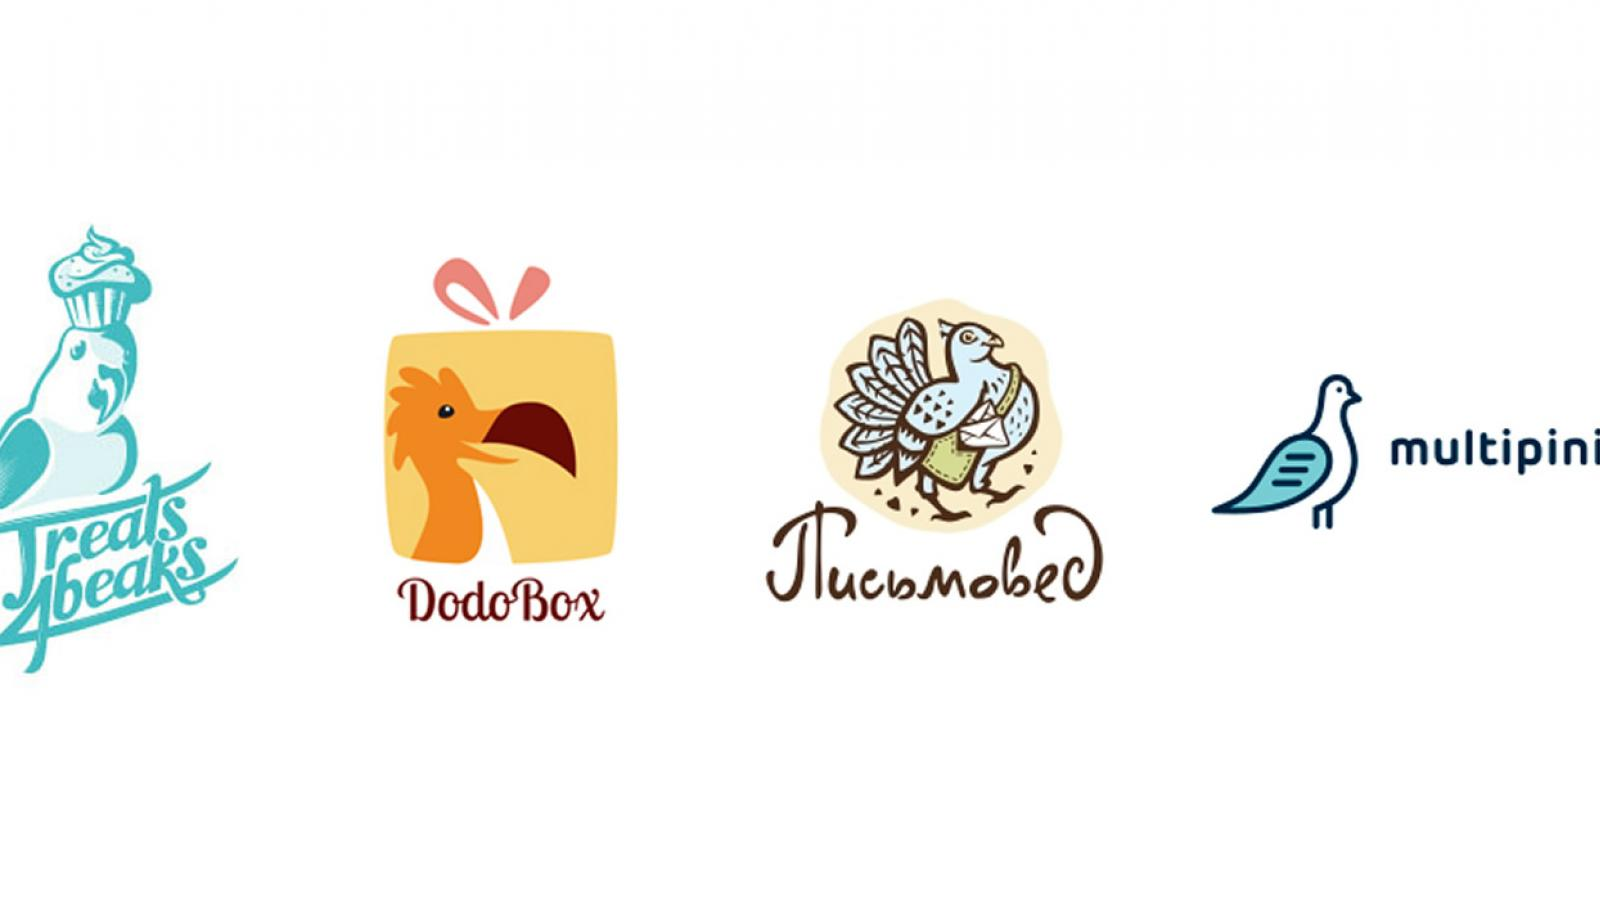 Logo Design: Birds